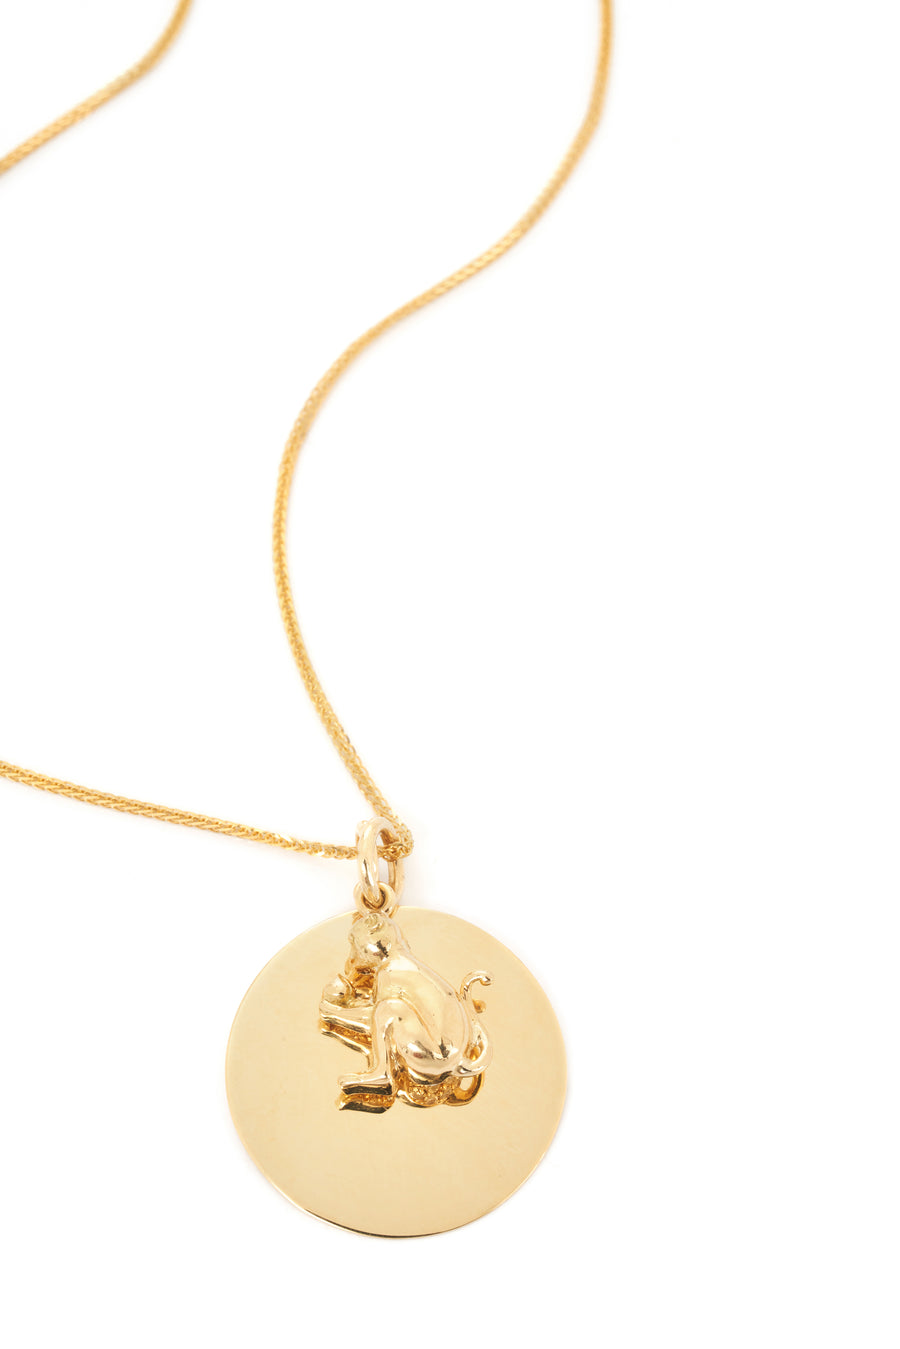 Zodiac Monkey Pendant Necklace